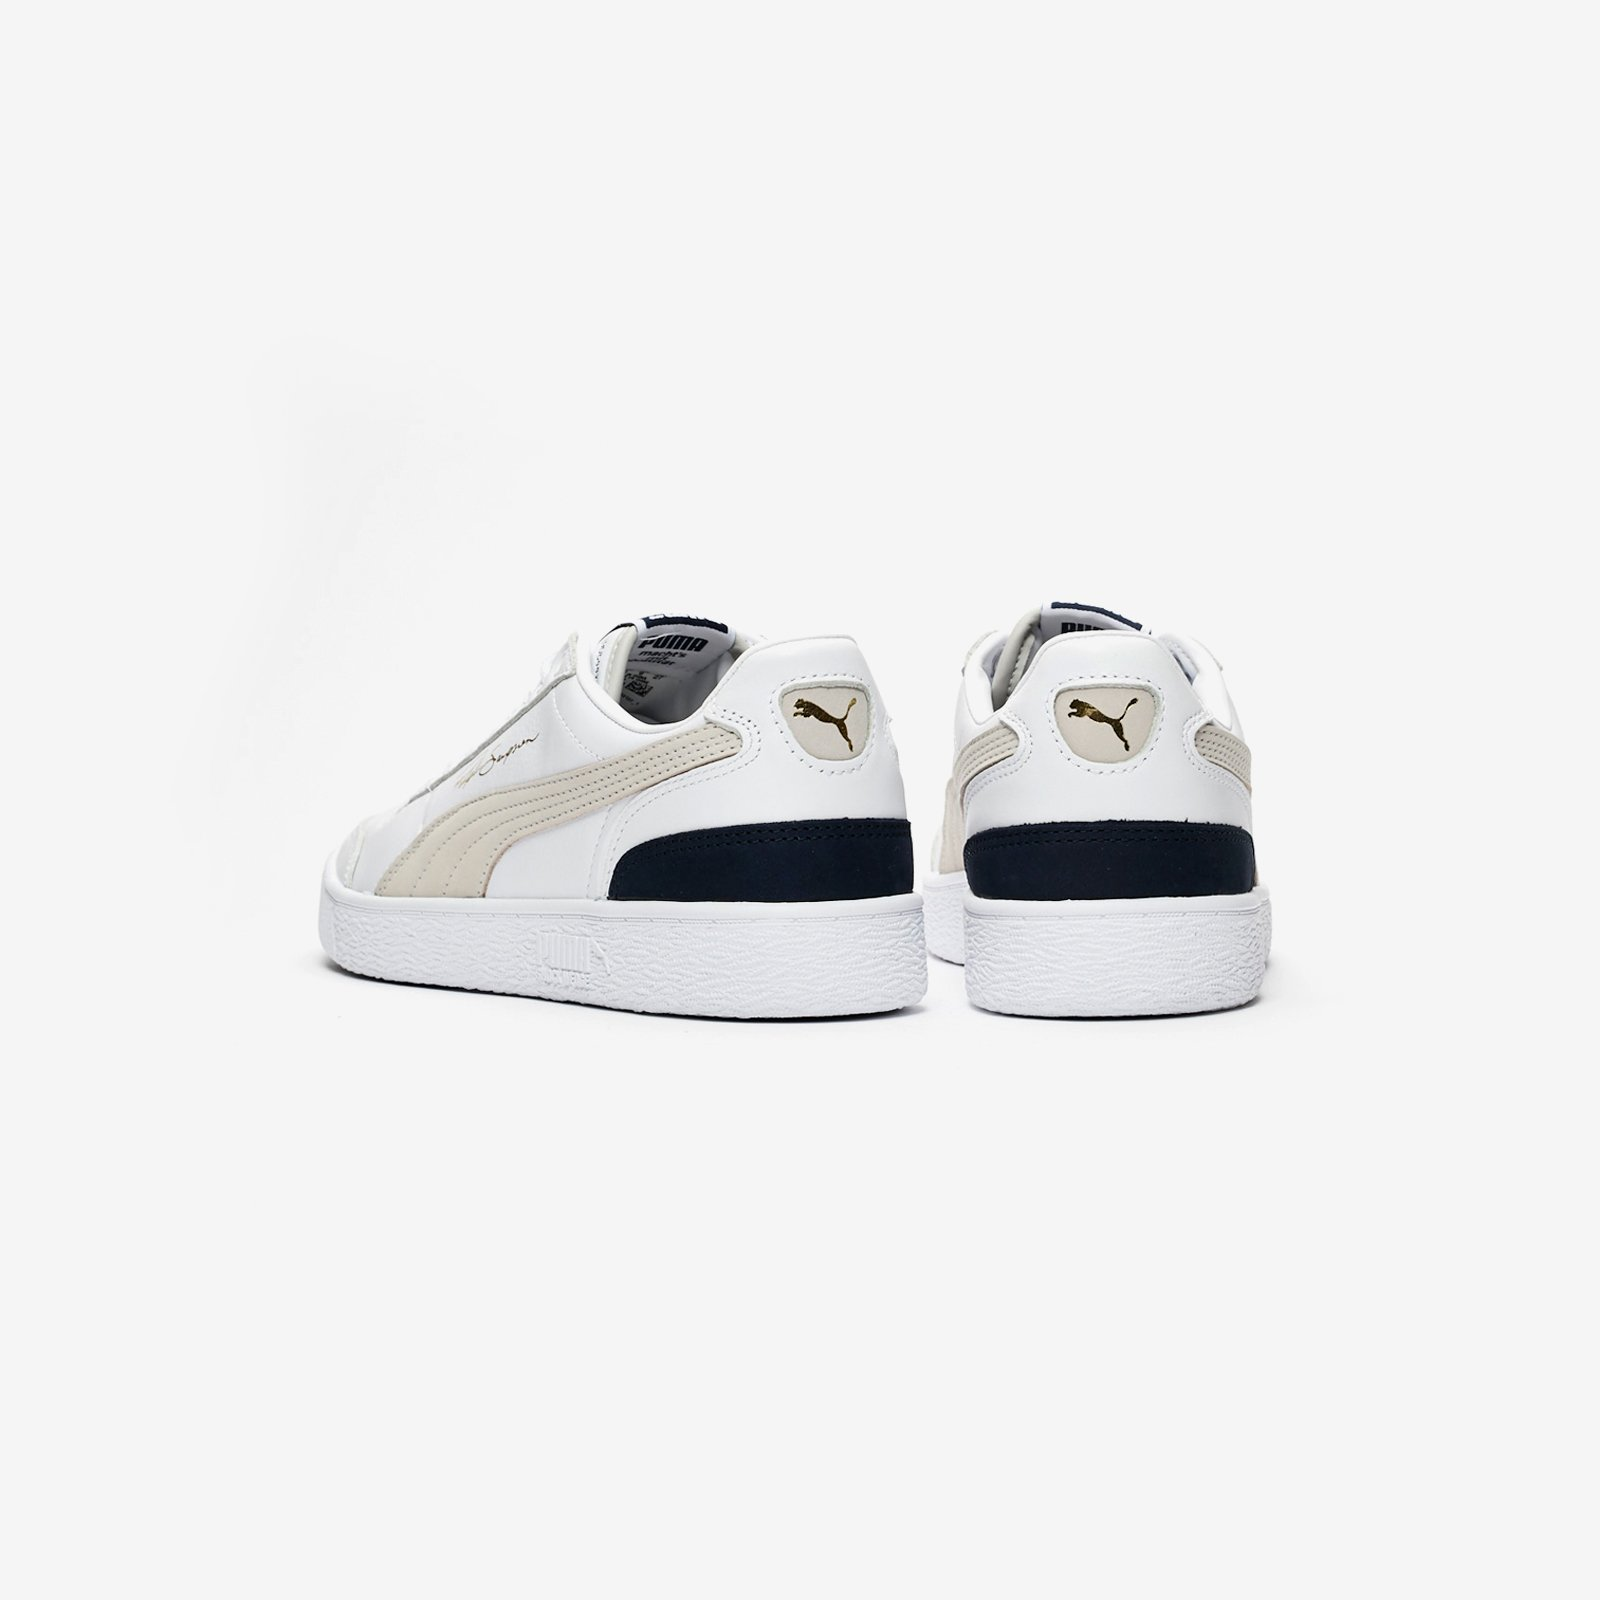 Puma Ralph Sampson Low OG 370719 01 Sneakersnstuff